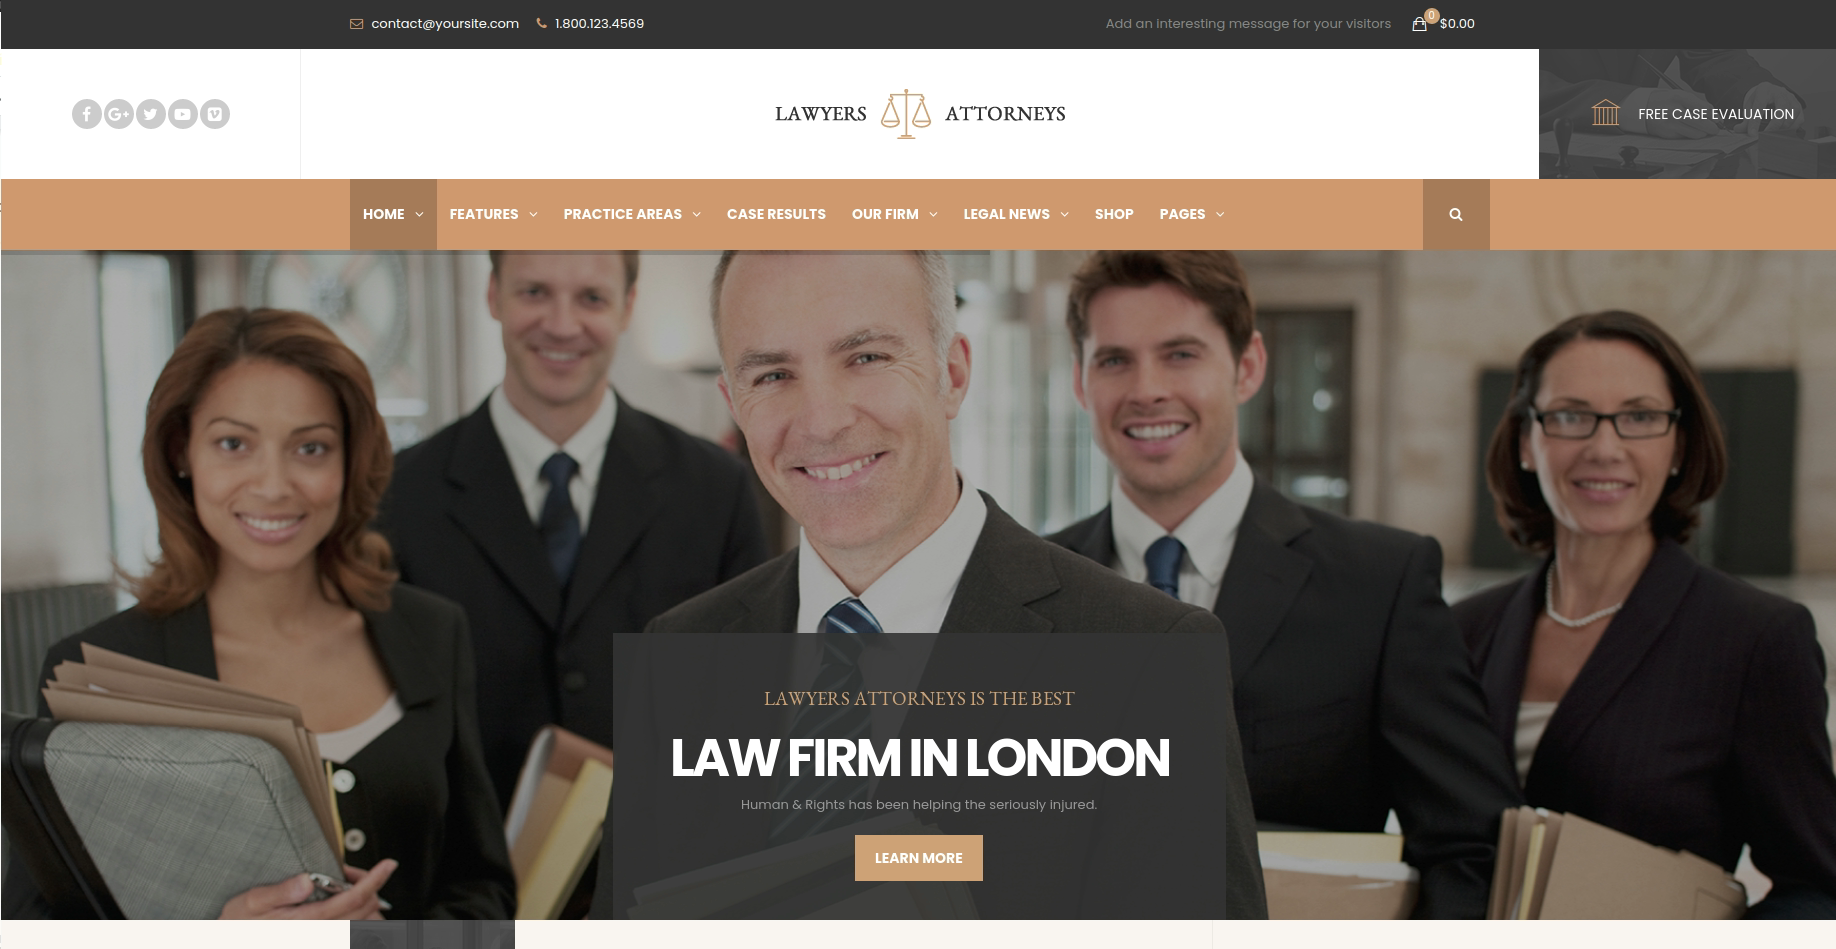 Lawyer Attorneys lawyer website template